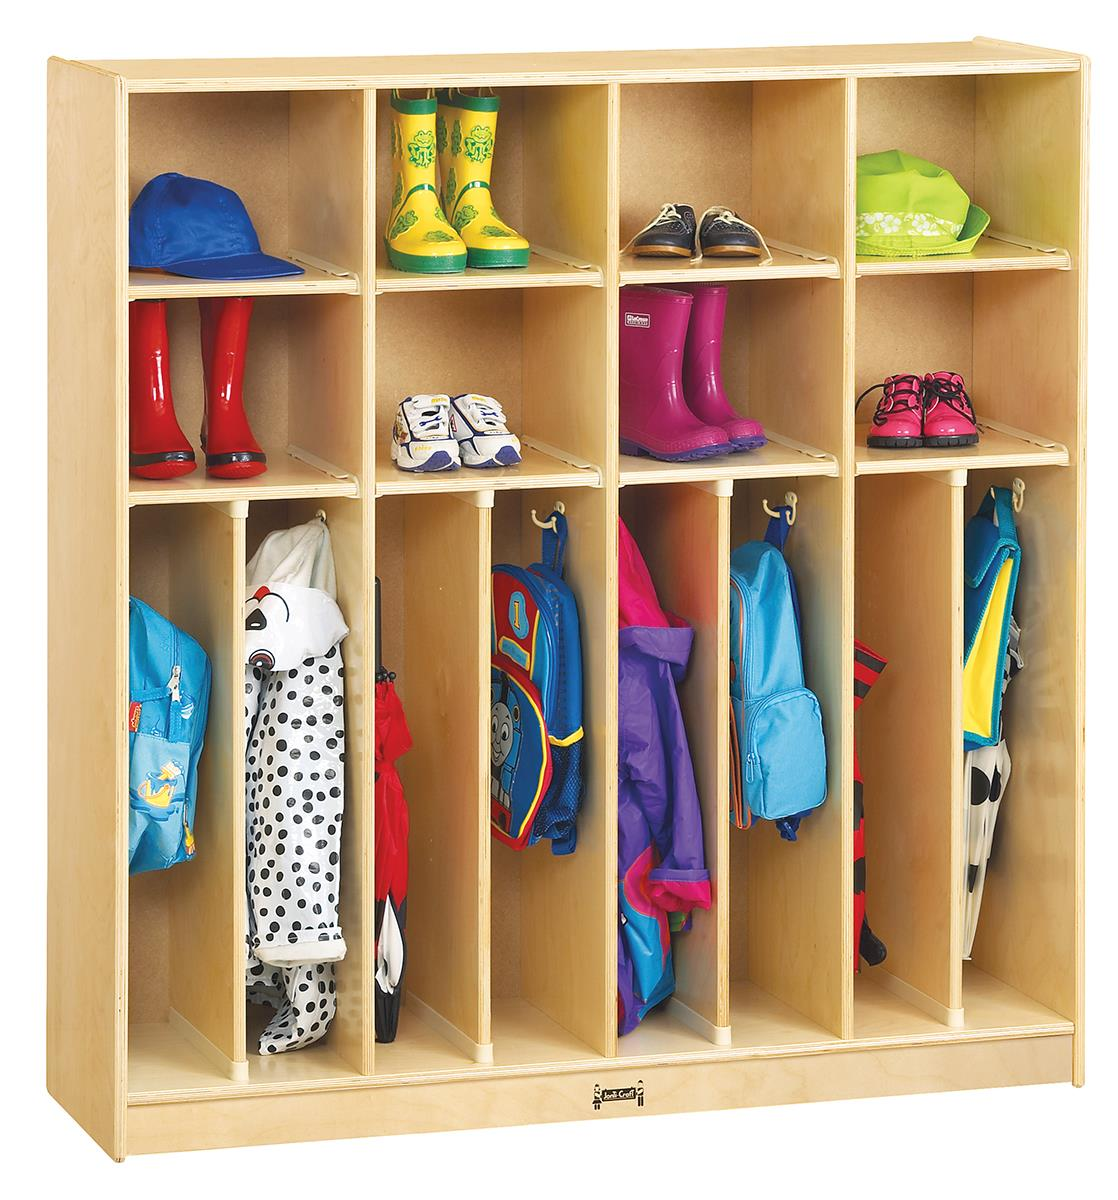 Childrens Wooden Clothing Lockers Baltic Birch Construction